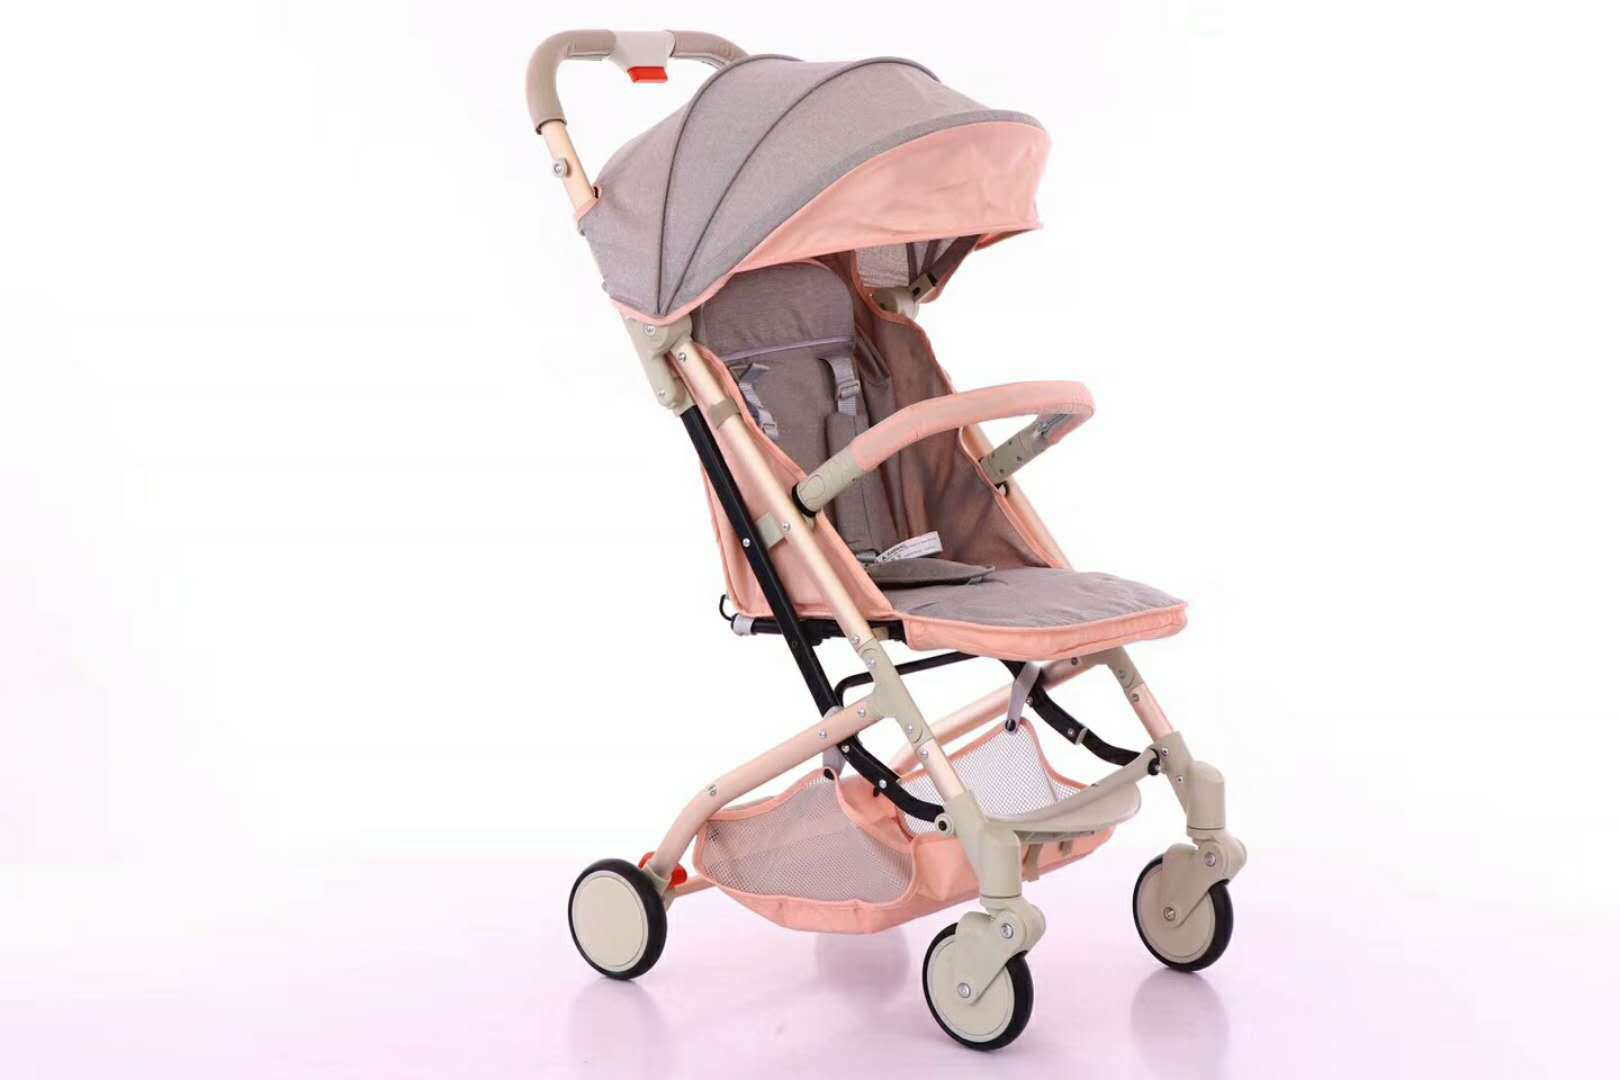 Babyone Baby Jogger Hot Item 2018 New Model Aluminum Alloy Frame Lightweight Carrier Baby One Button Folding Polyester Material Baby Strolle